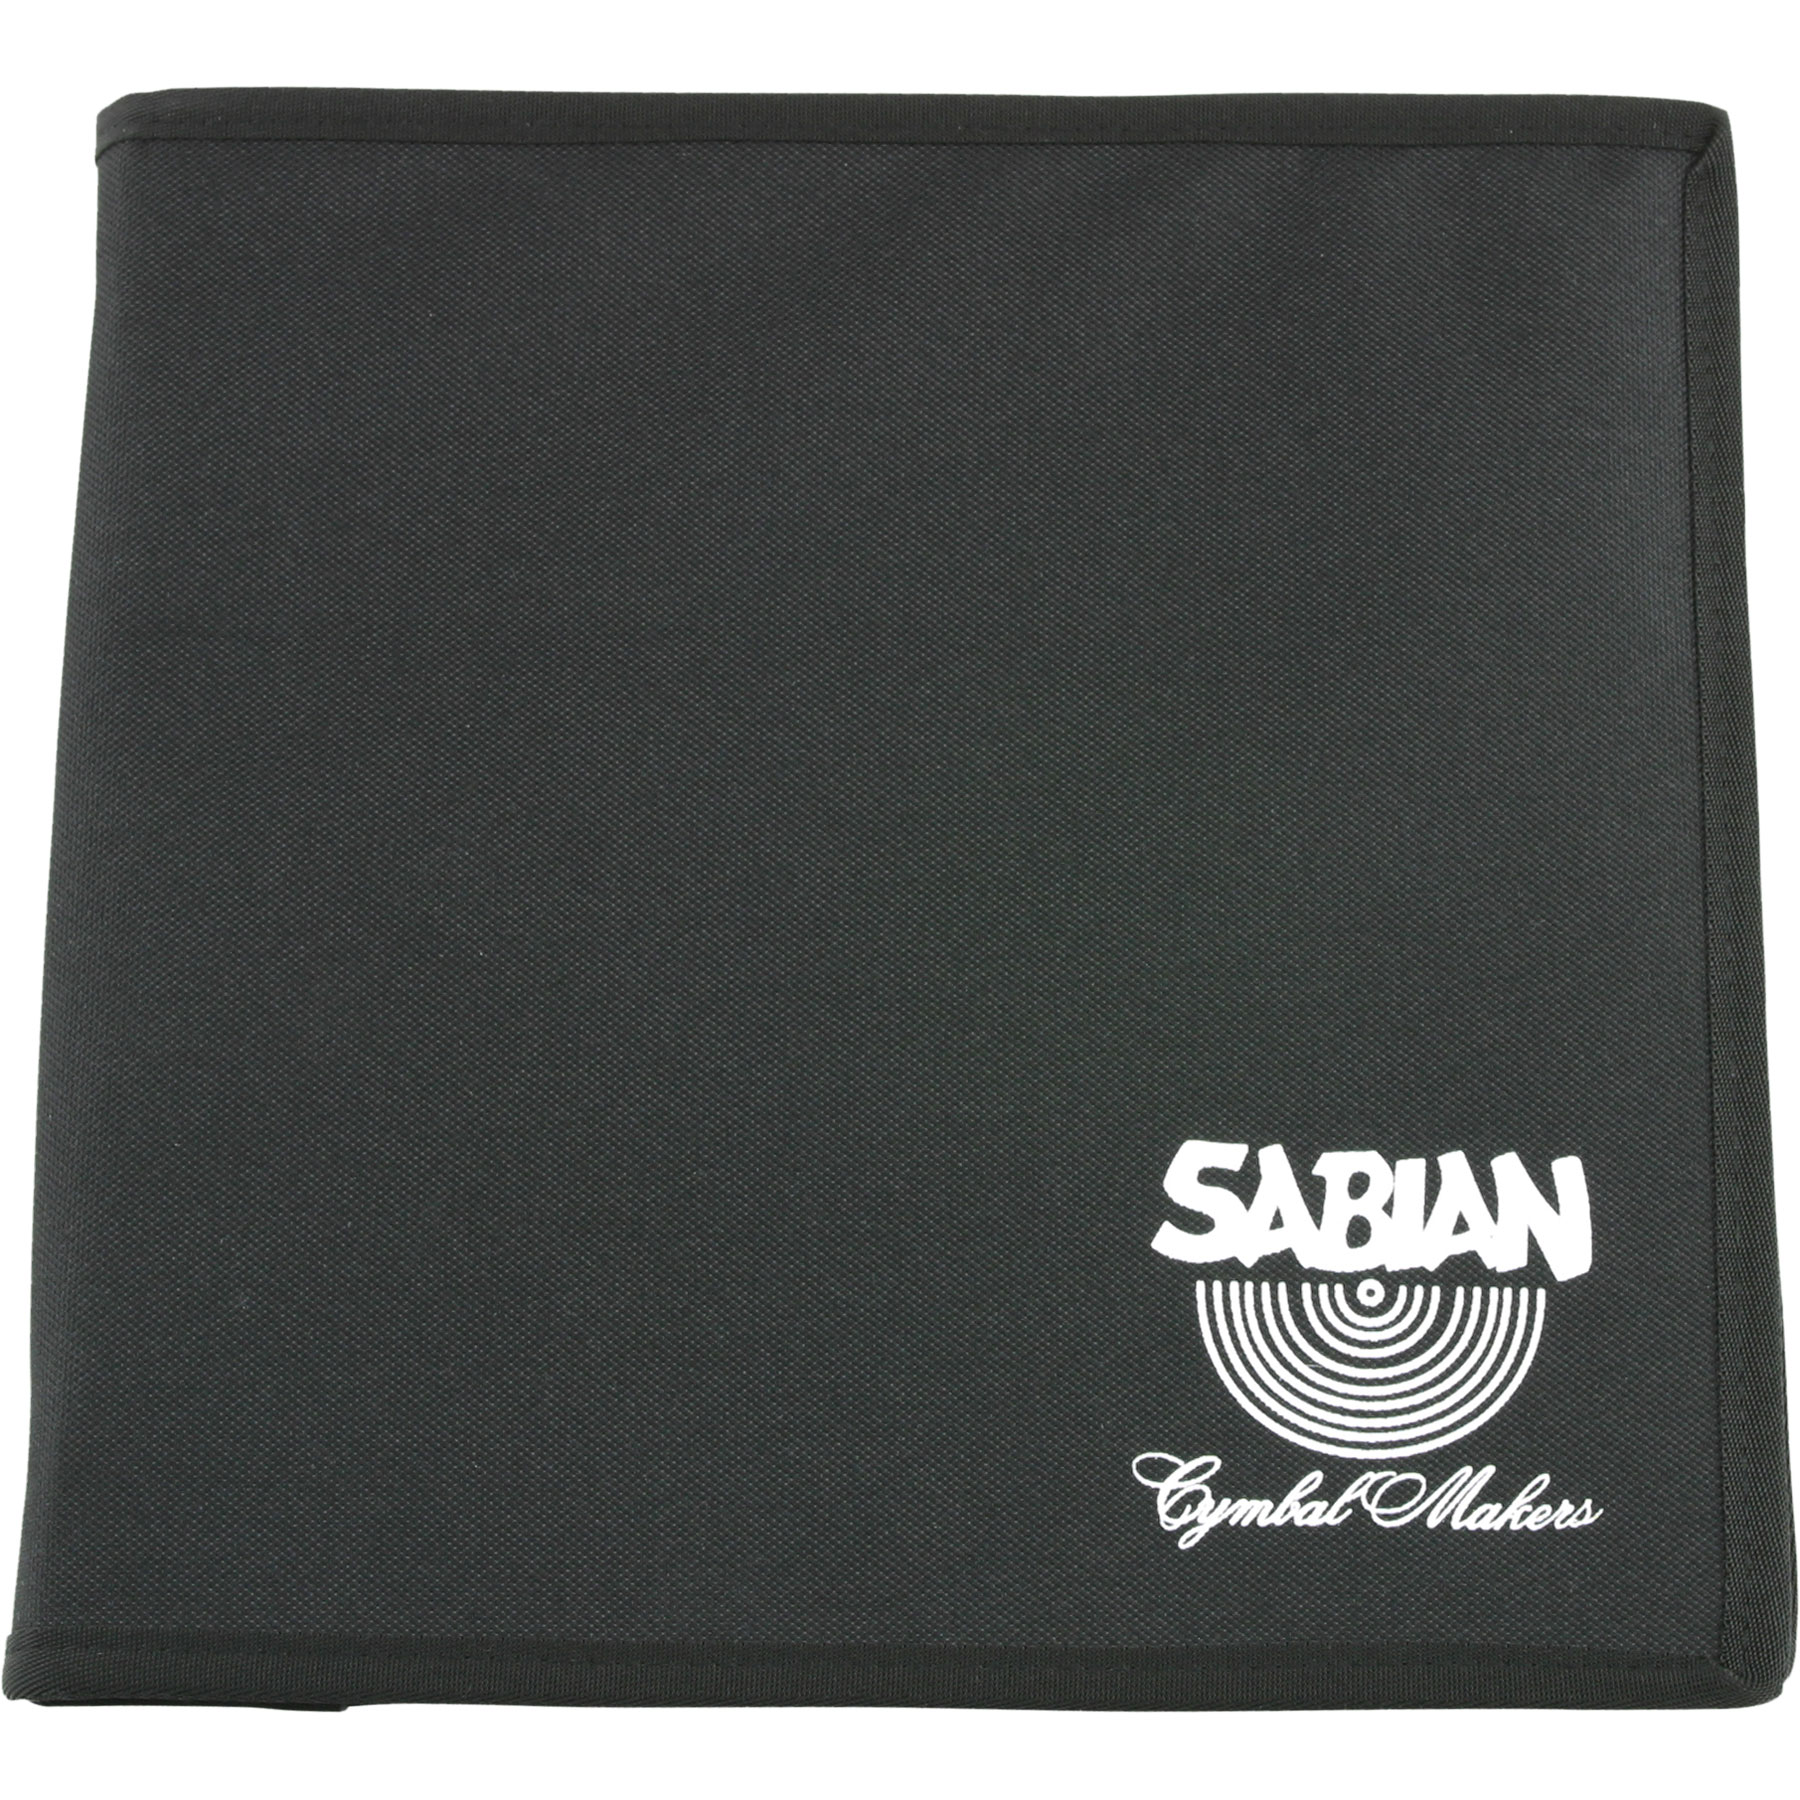 Sabian Triangle & Beater Attache Case